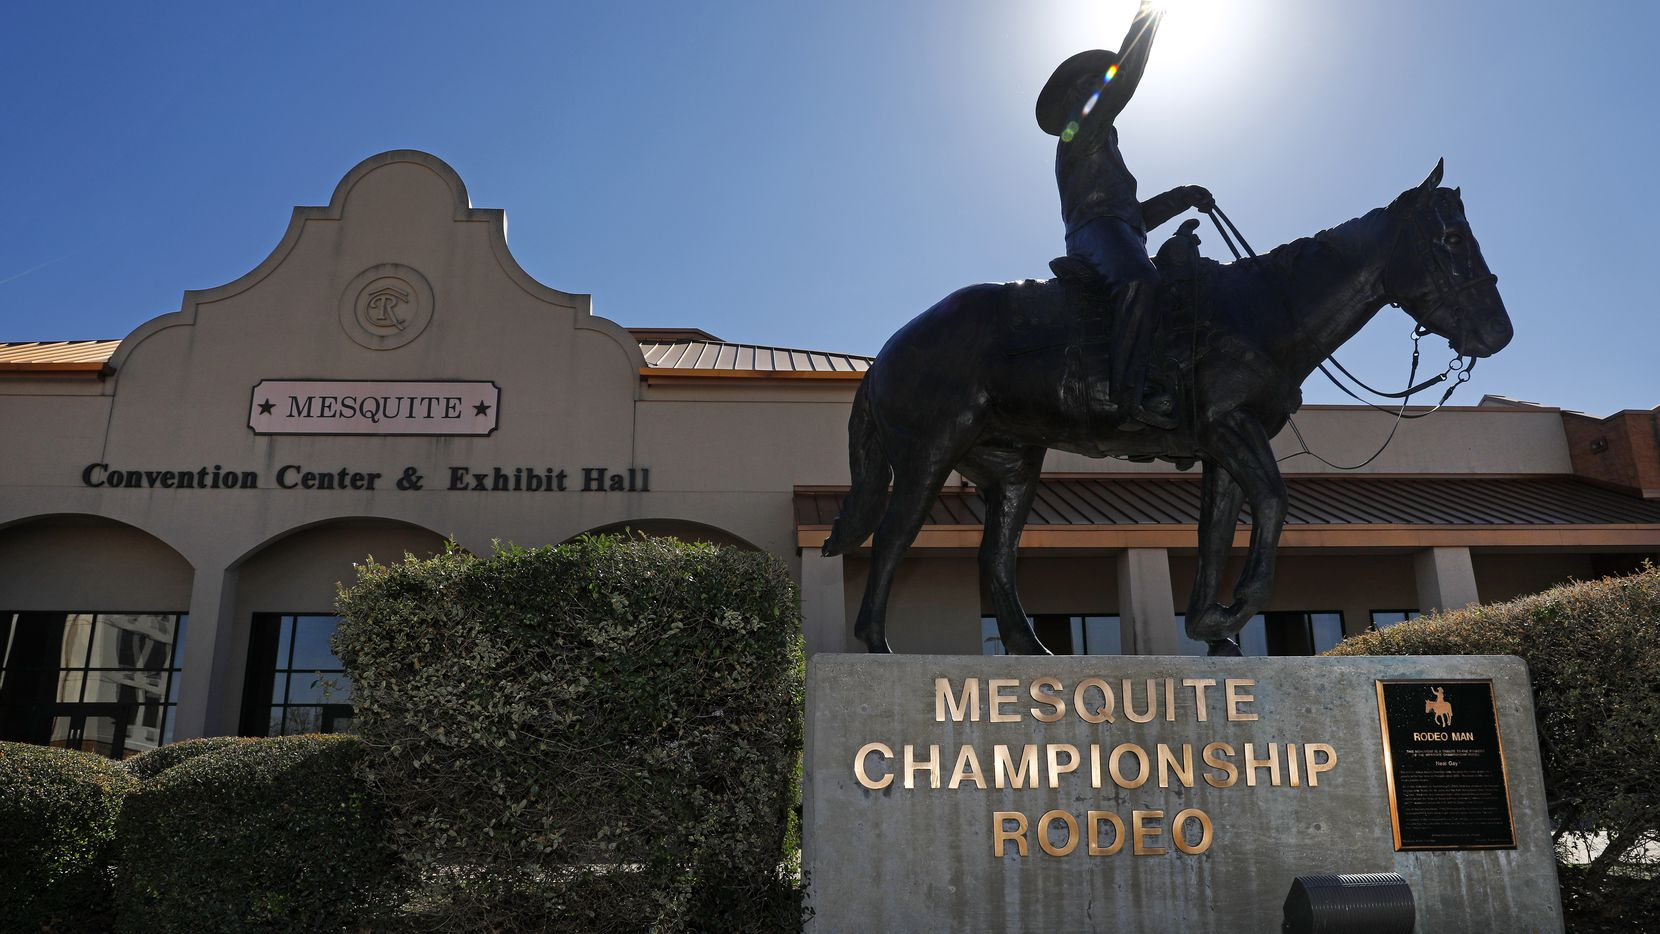 Developer Mehrdad Moayedi, who redid downtown Dallas' historic Statler Hotel, has purchased the landmark Mesquite Rodeo with plans to restore the building and make it part of a mixed-use project. A statue of famed Texas cowboy and rancher Neal Gay sits before the Mesquite Convention Center and Exhibit Hall.